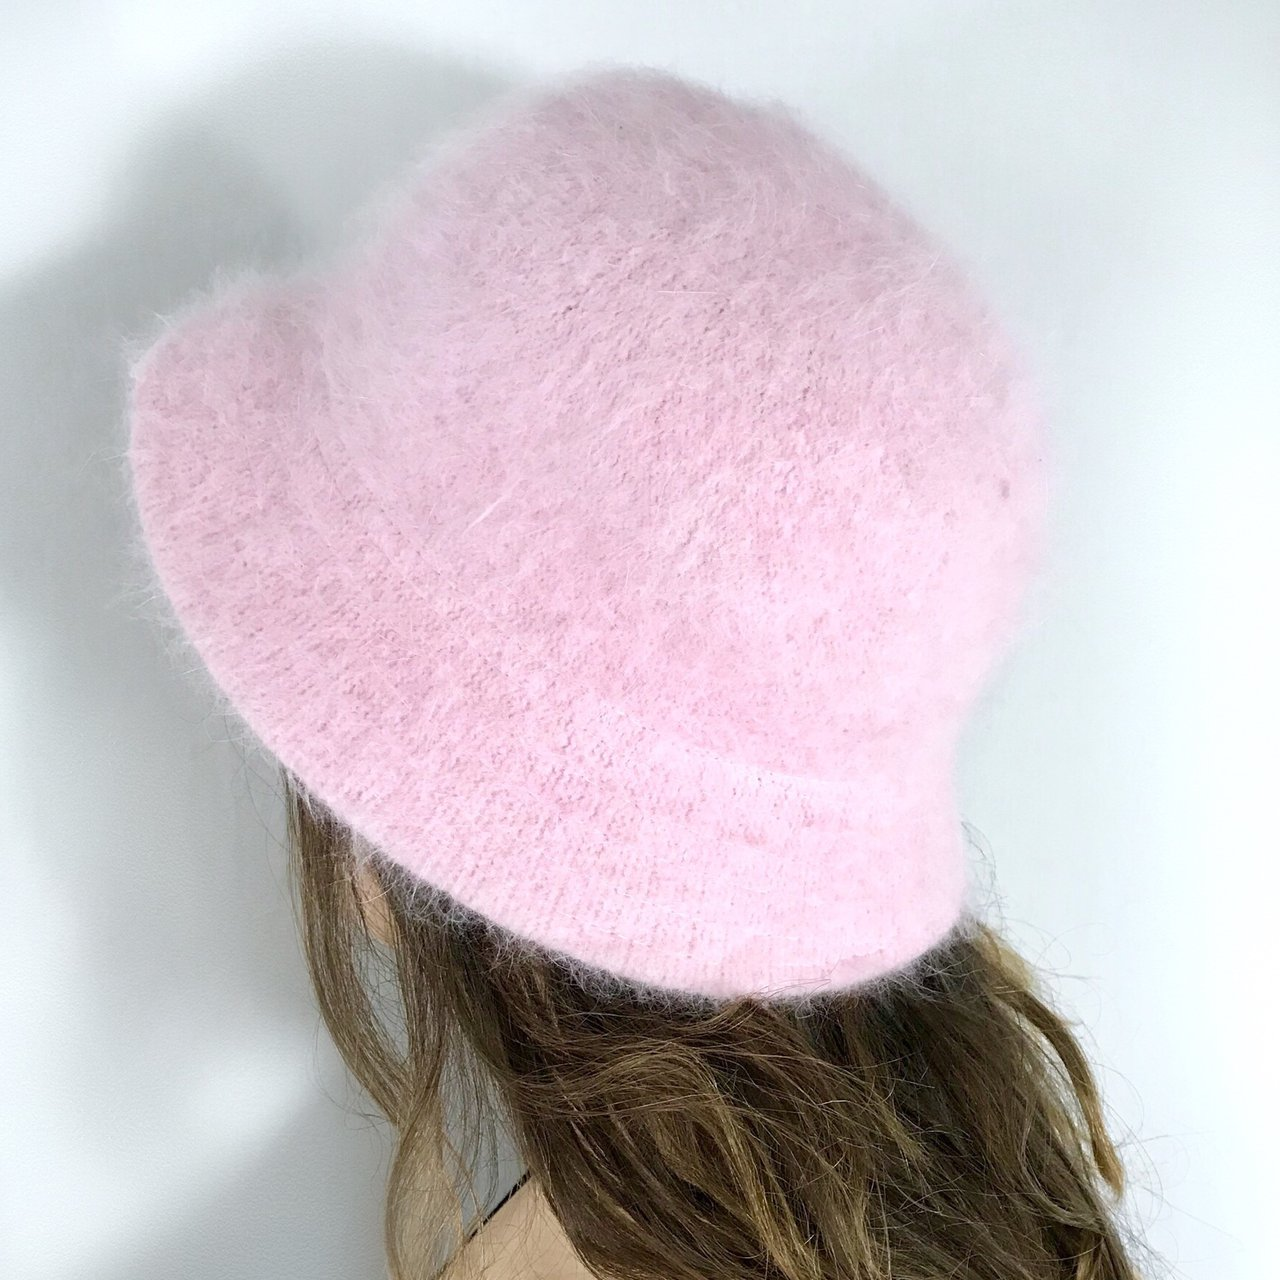 90s baby pink fuzzy bucket hat in perfect condition 💕 soft - Depop f6299a819c4